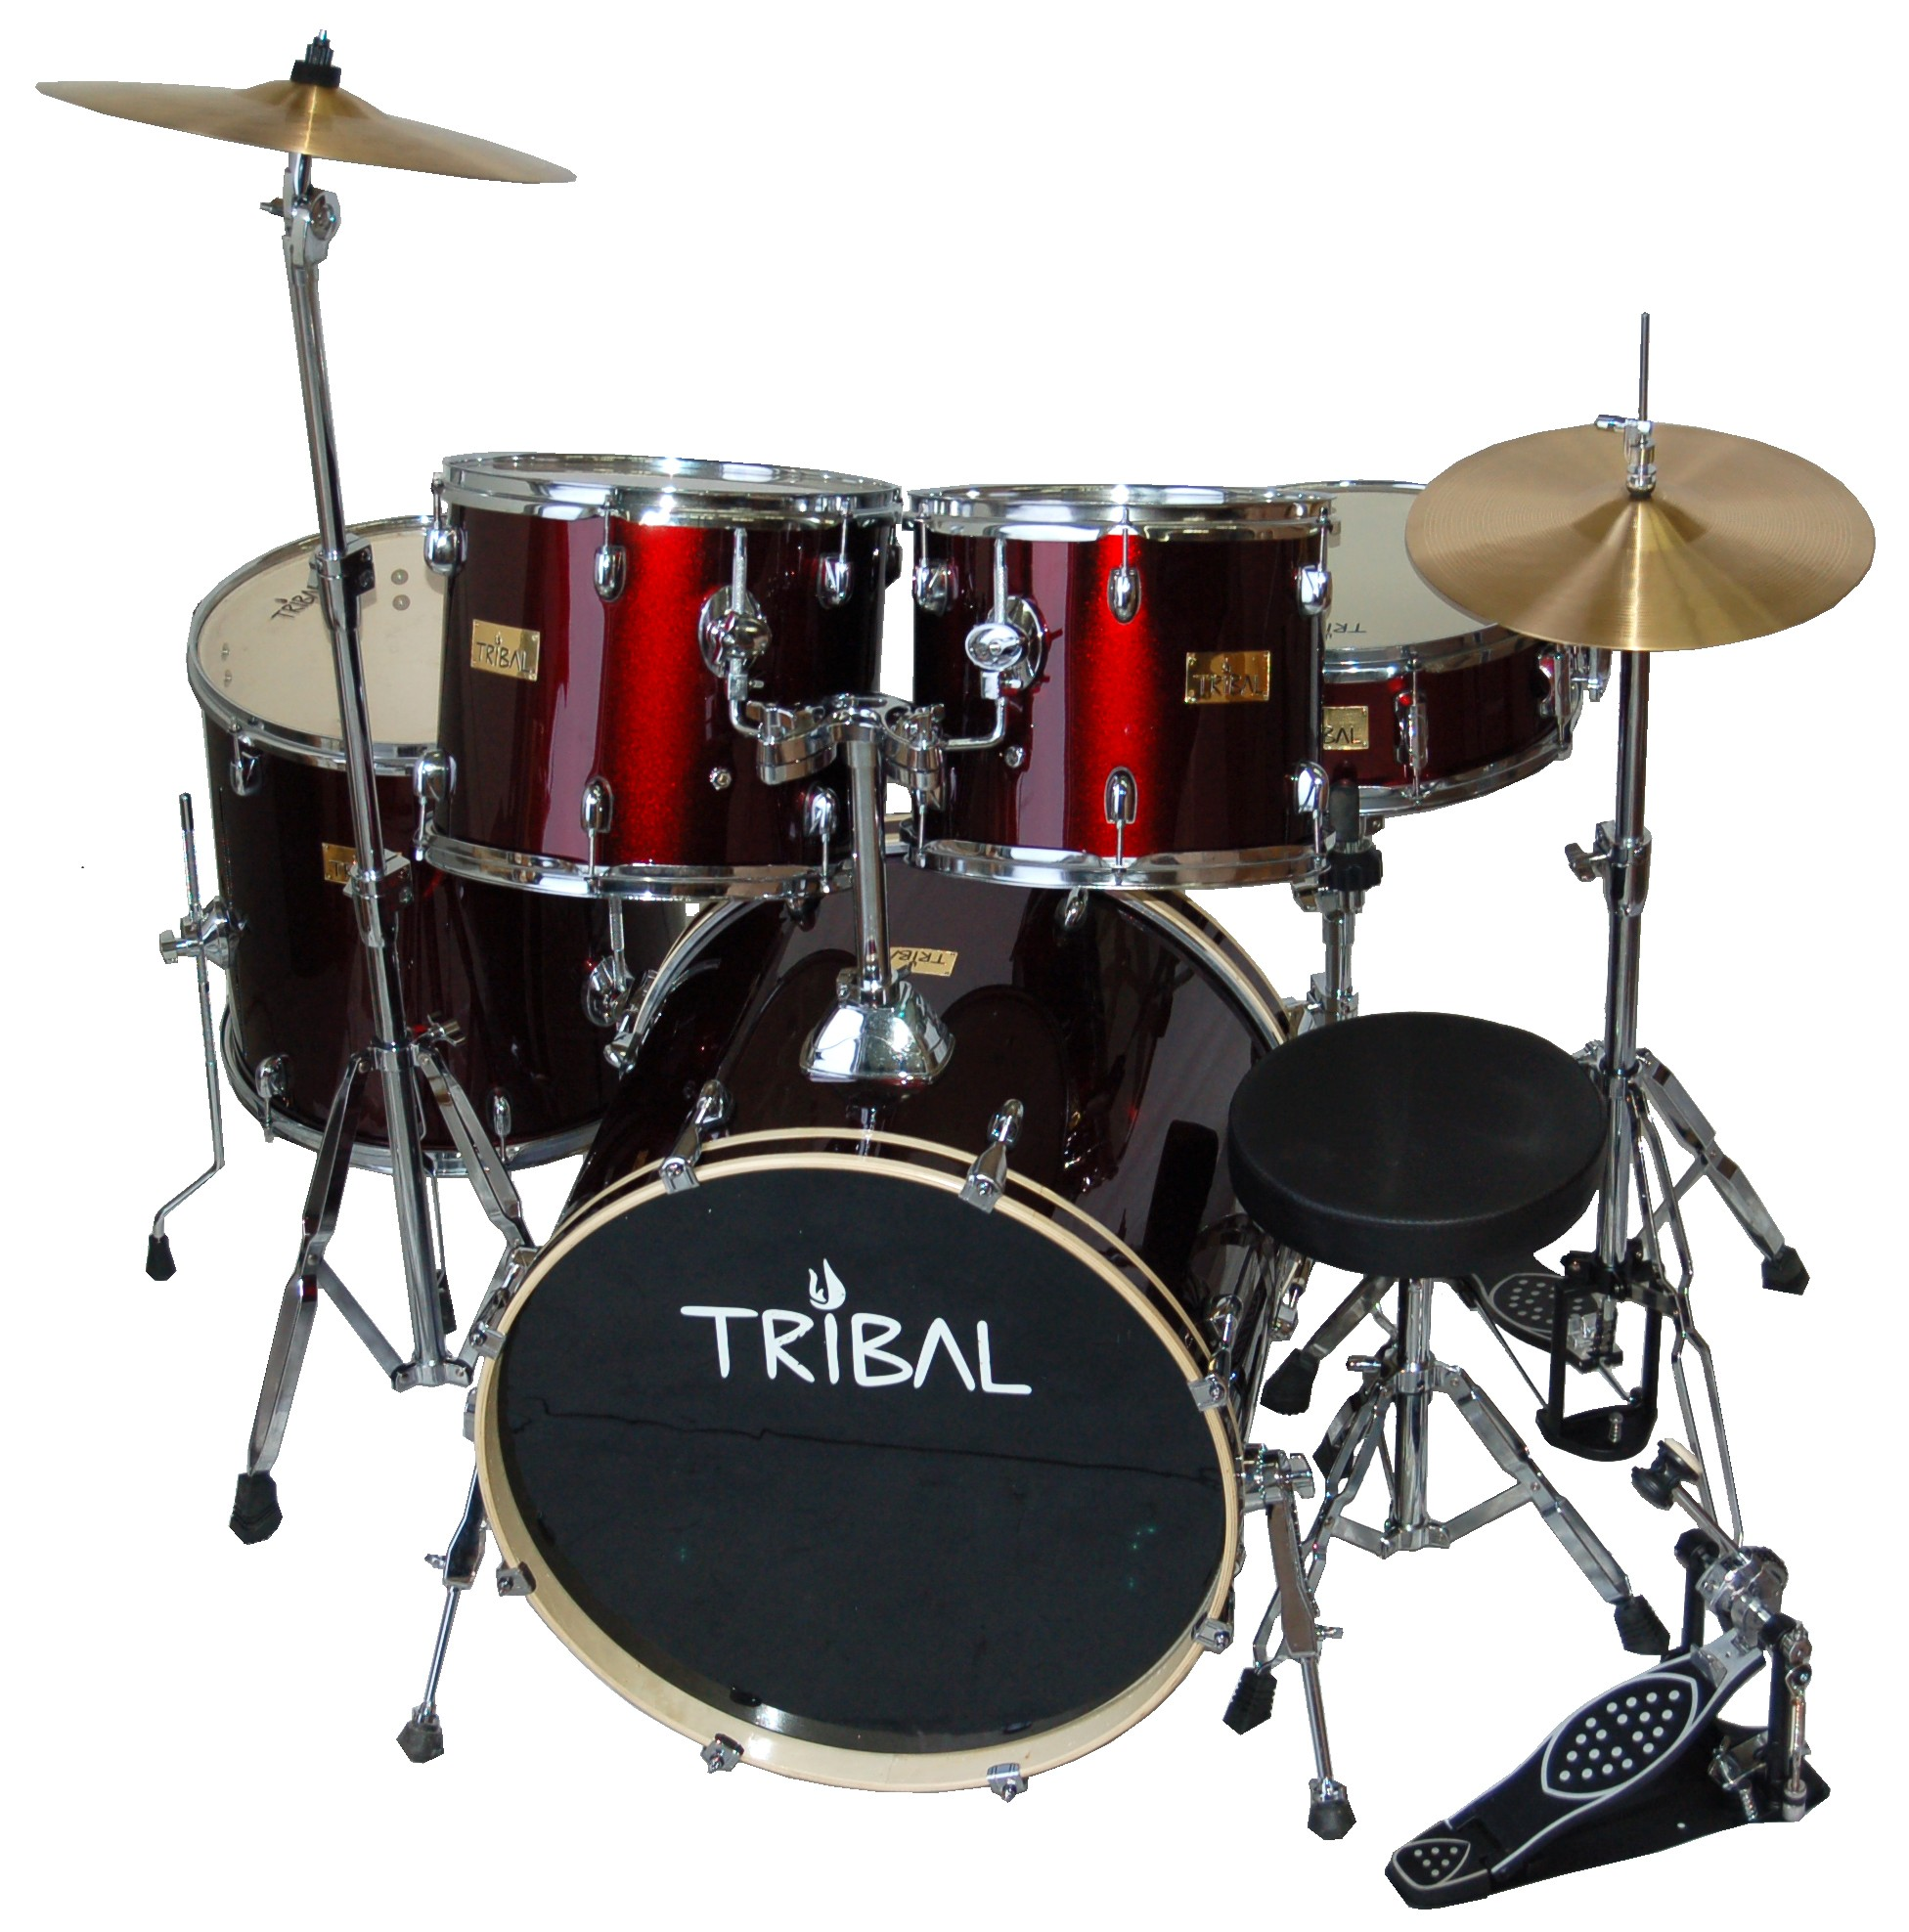 TRIBAL LANCE 801 SERIES – WINE RED